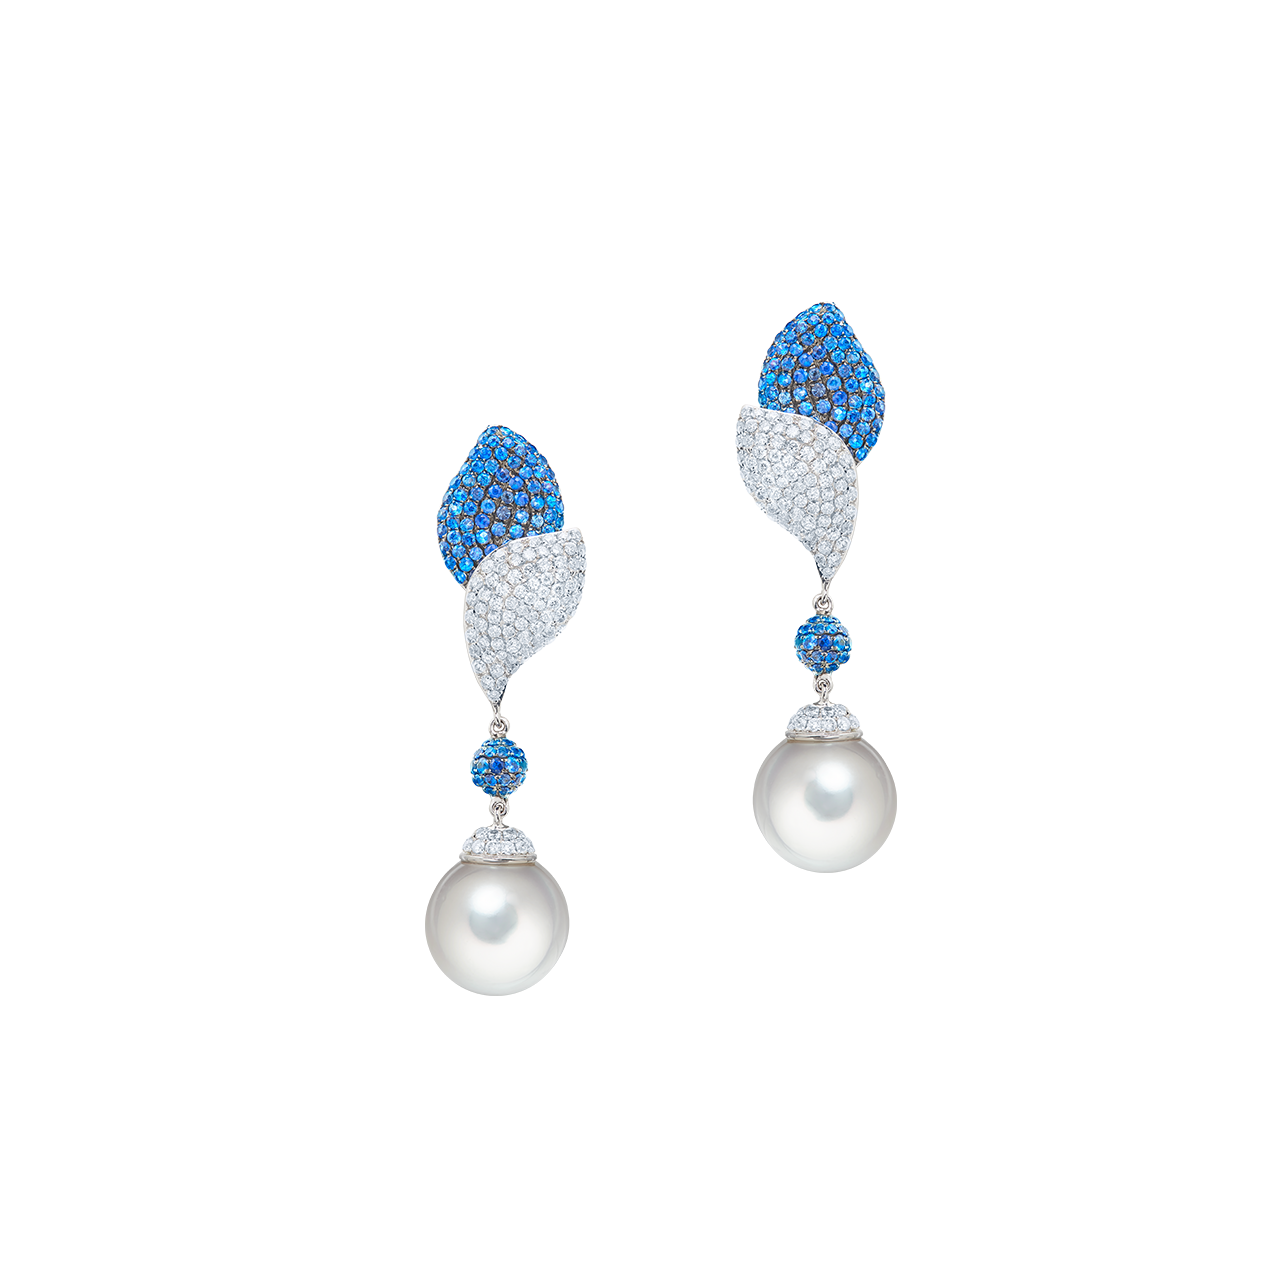 EGL 珍珠藍寶鑽石耳環 35.09克拉